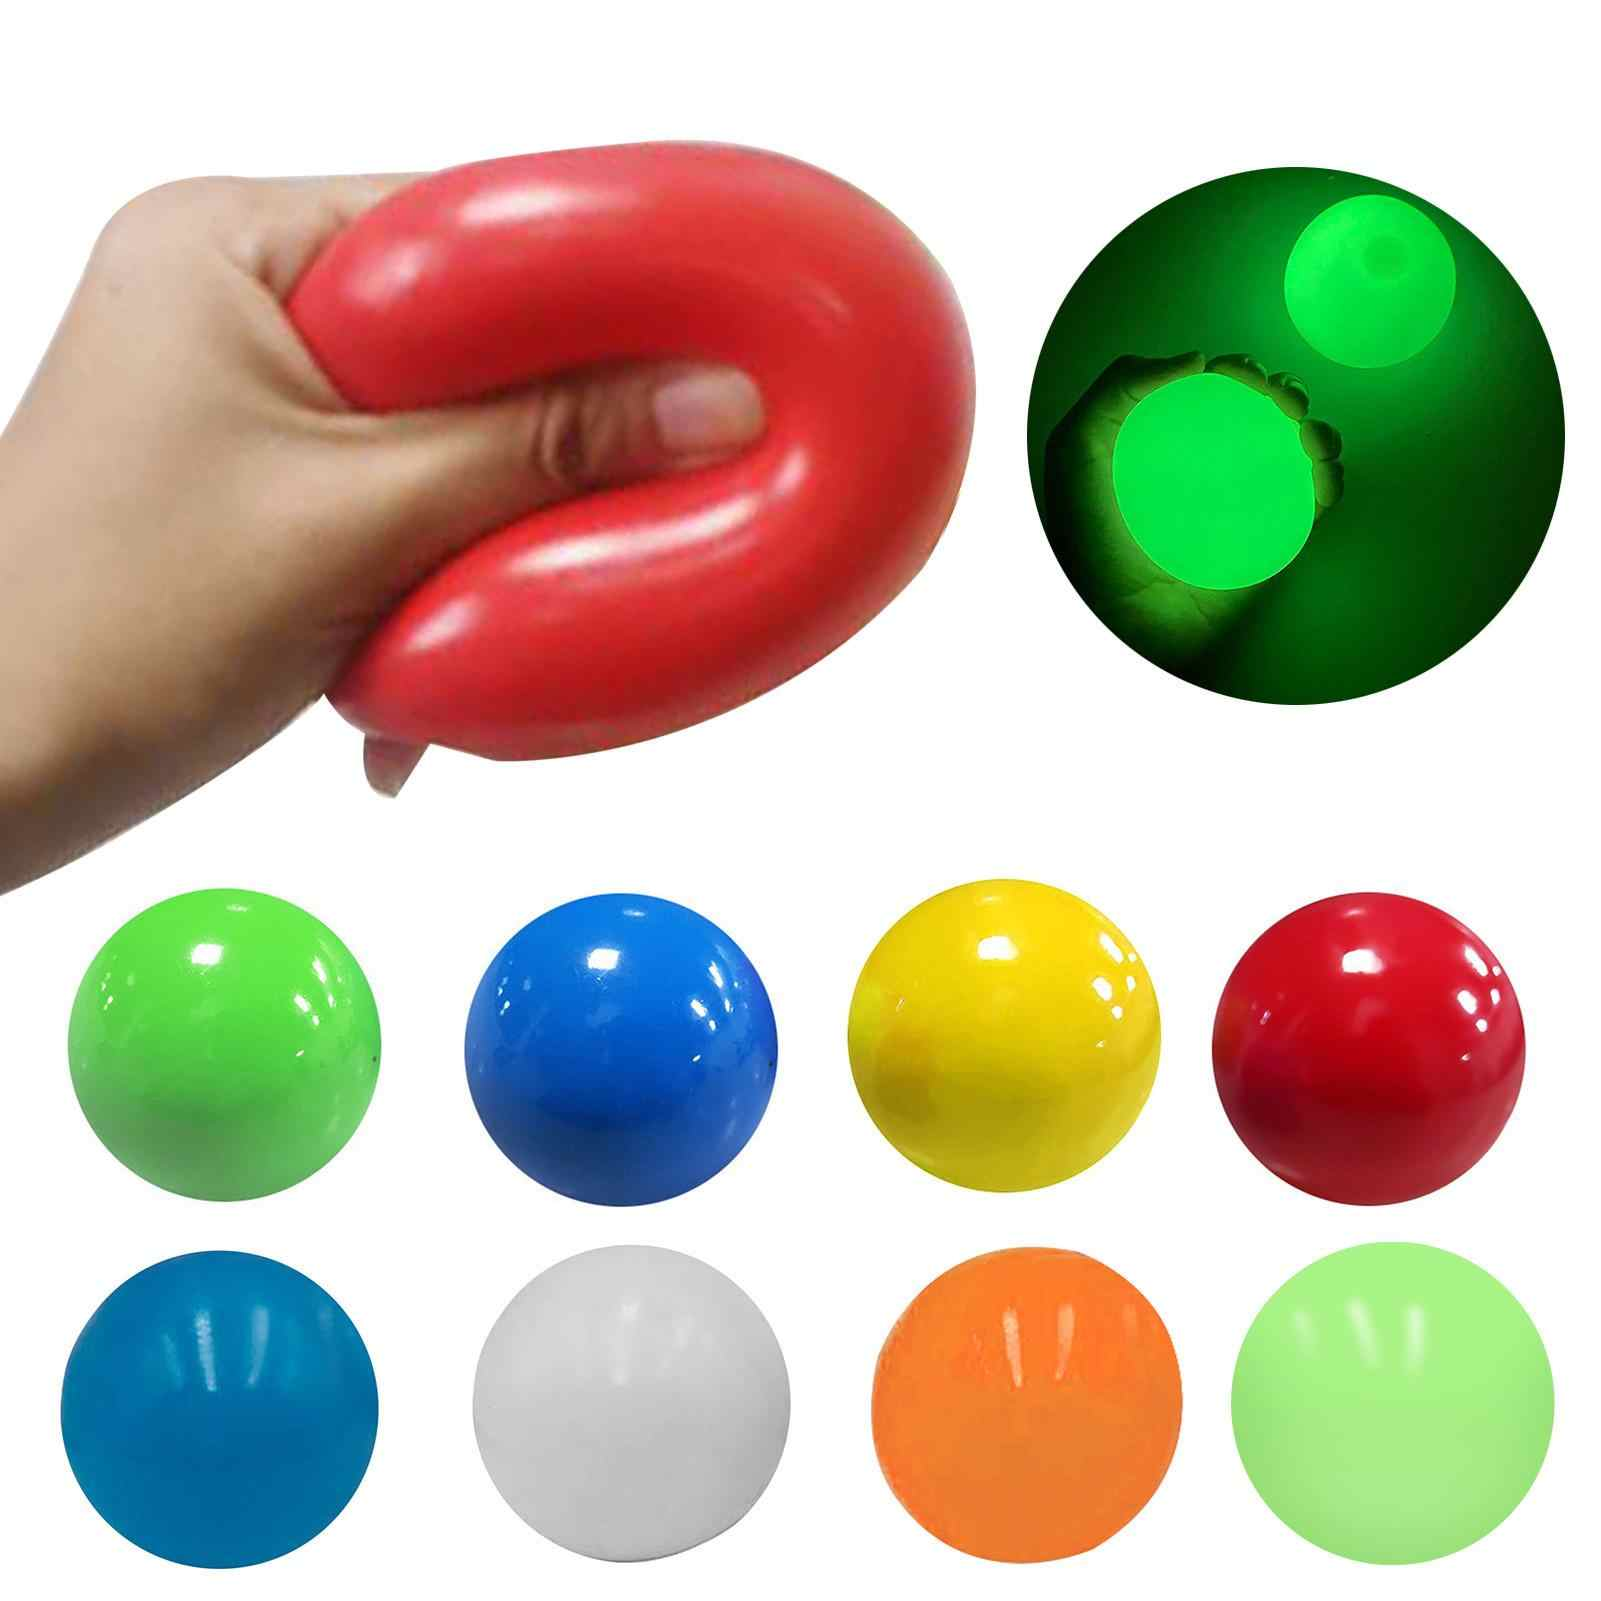 4PC Sticky Wall Balls for Ceiling Stres Relief Globbles Squishy Relief Kids Toy